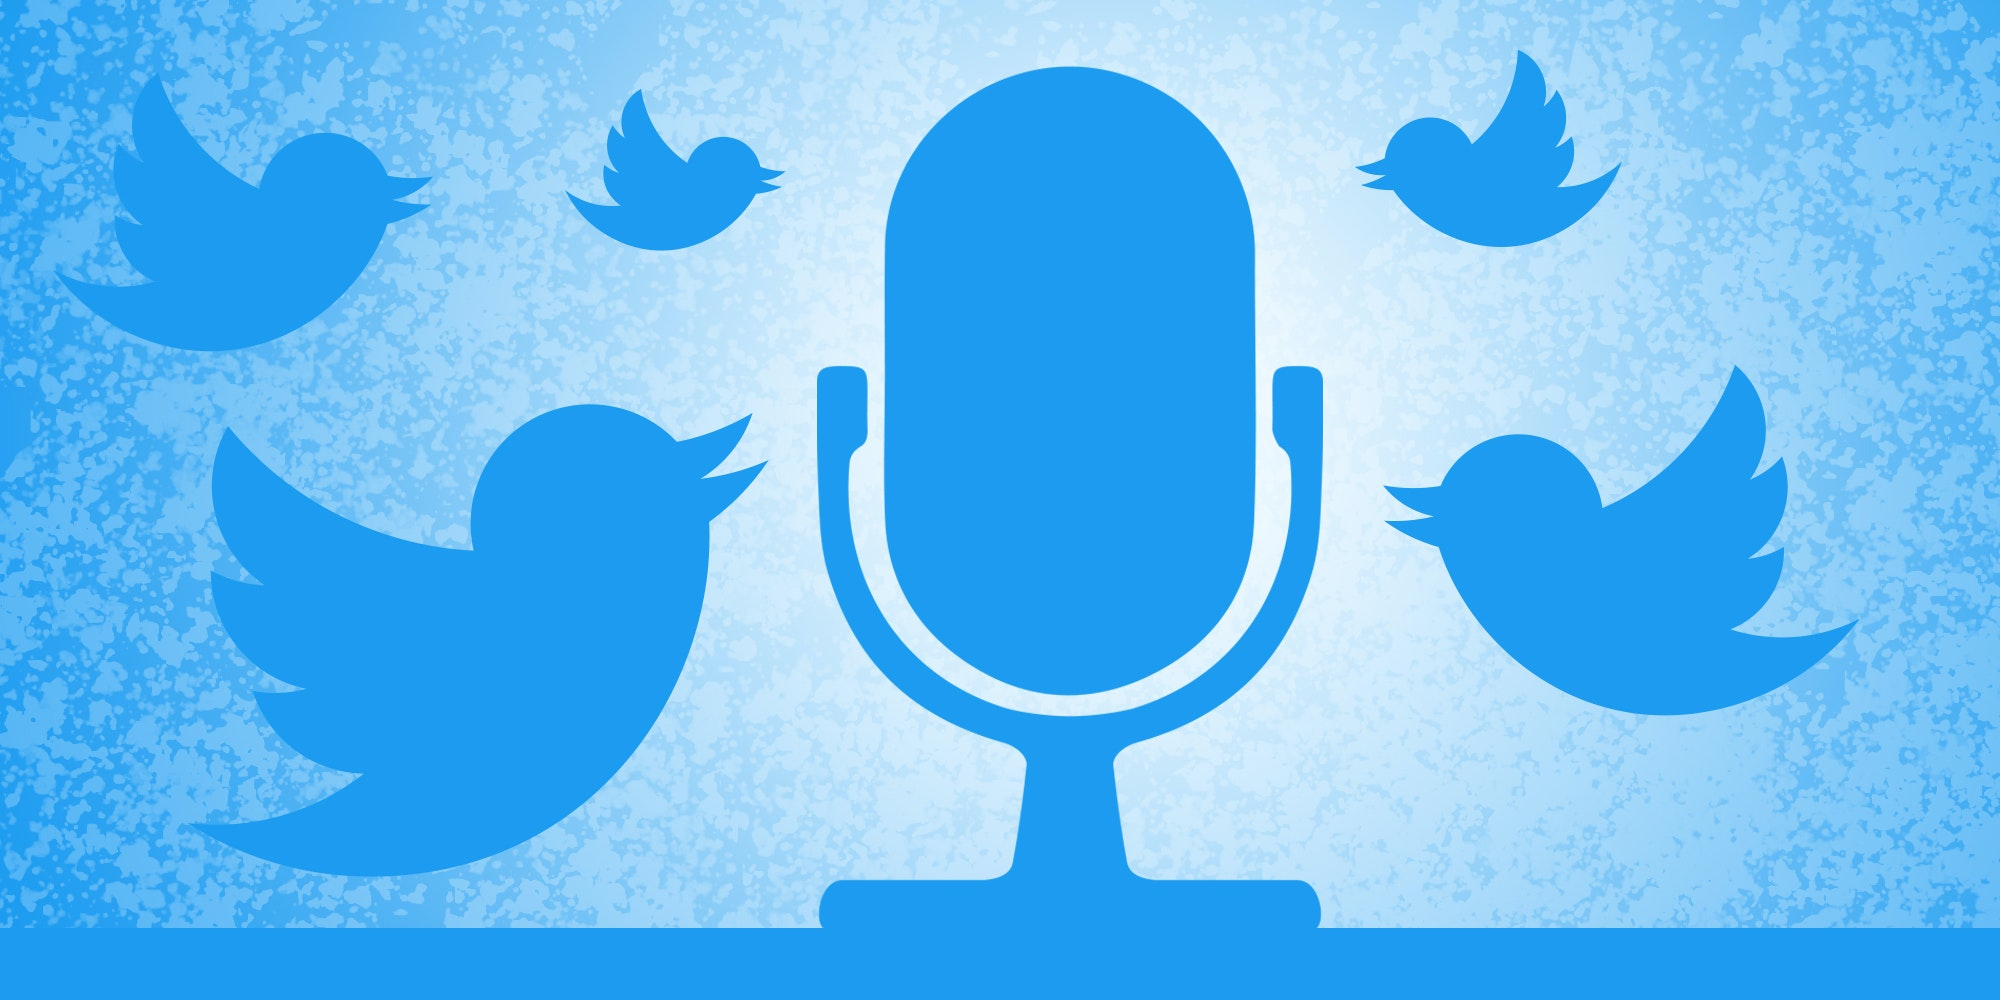 Twitter Spaces: What You Need to Know About the New Feature